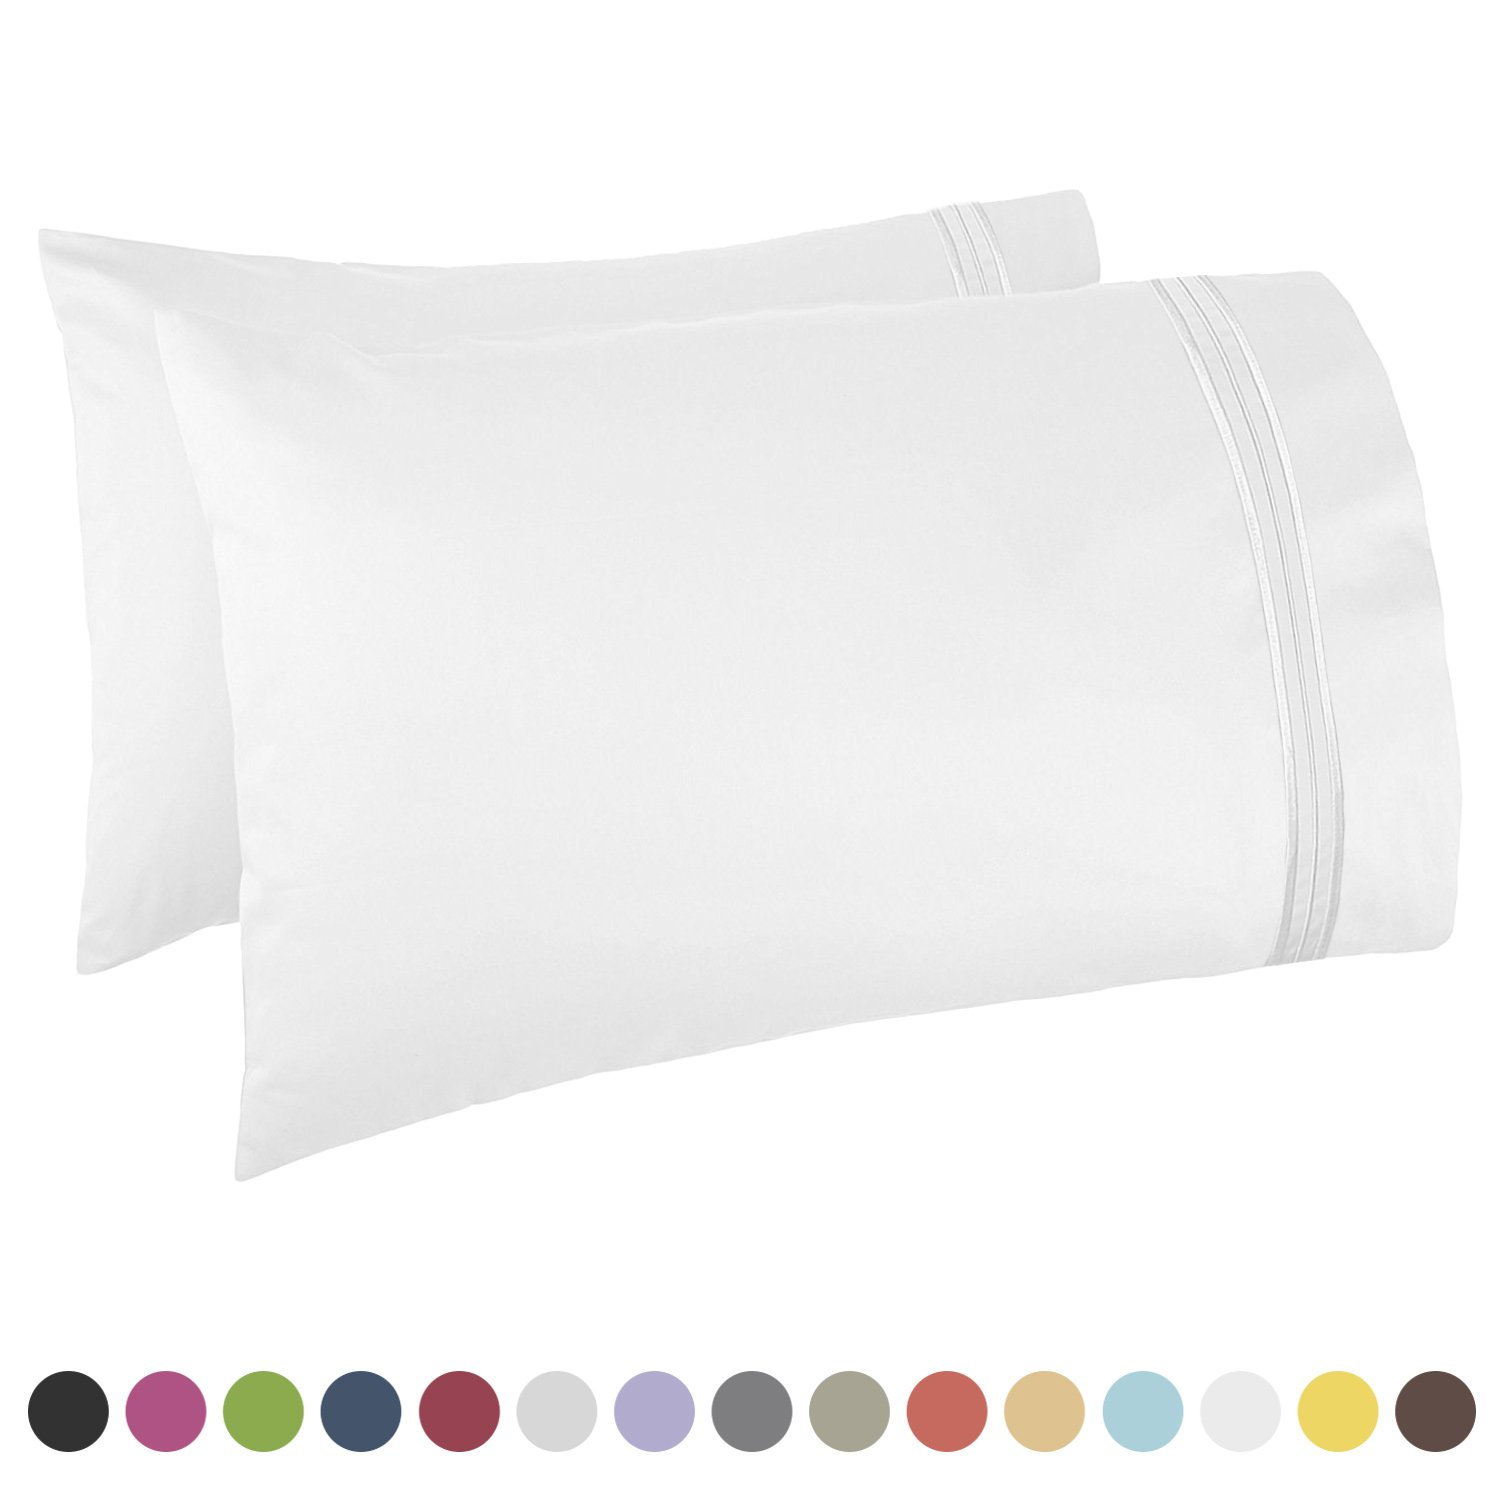 Nestl Bedding Premier 1800 Pillowcase - 100% Luxury Soft Microfiber Pillow Case Sleep Covers